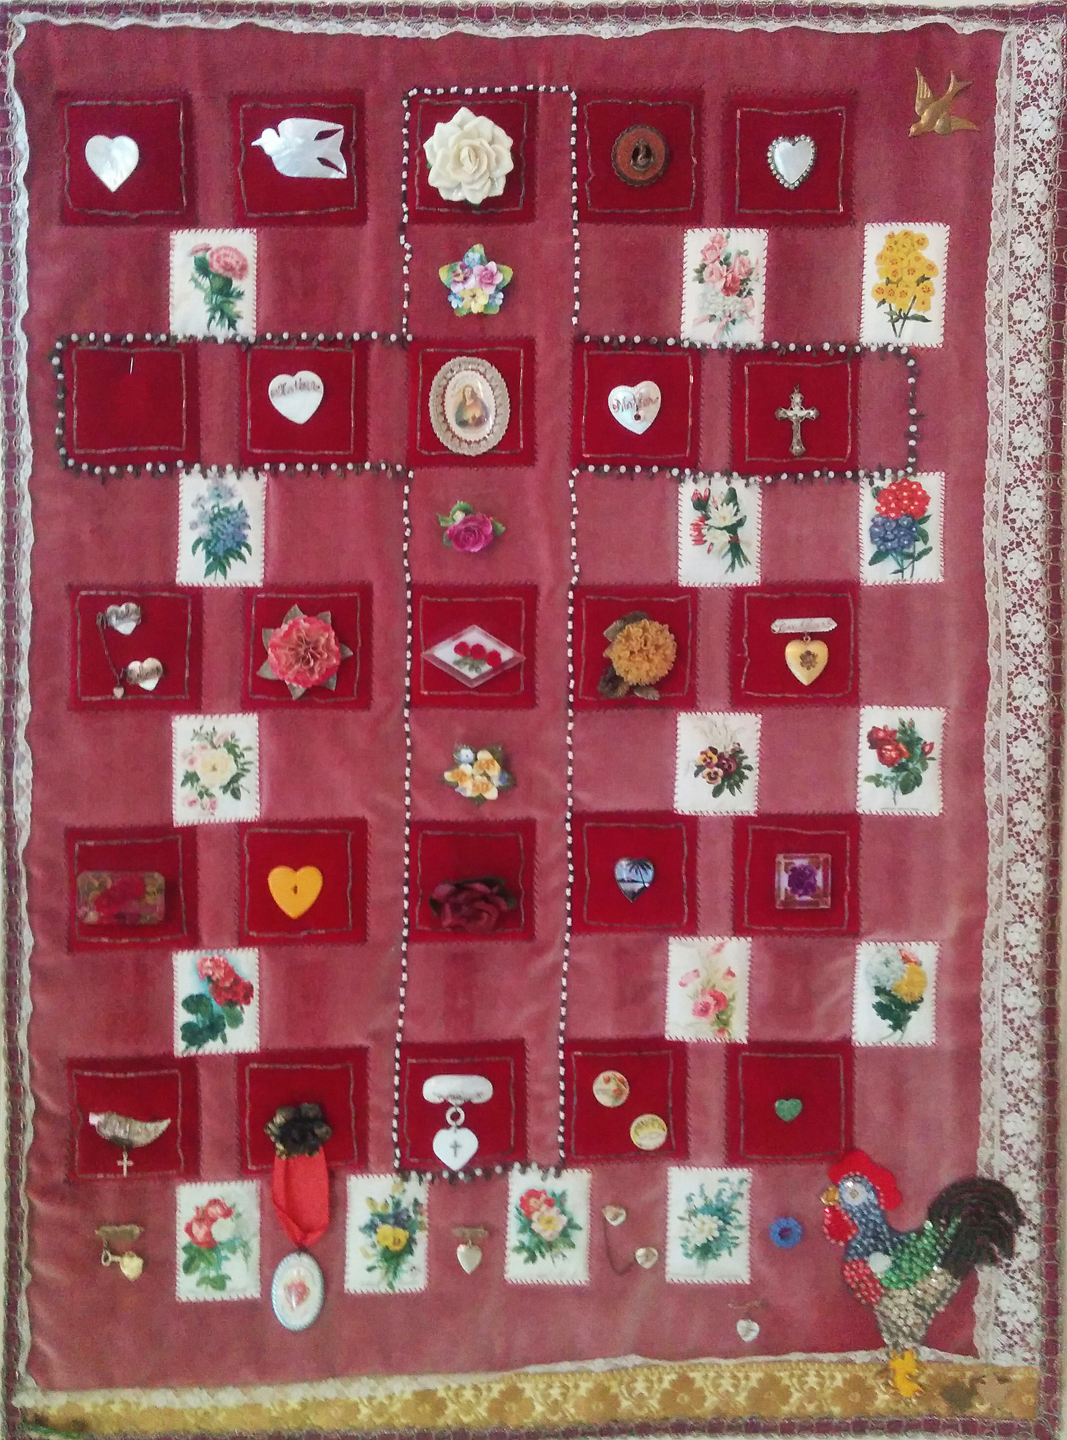 Hearts and Flowers, circa 1990